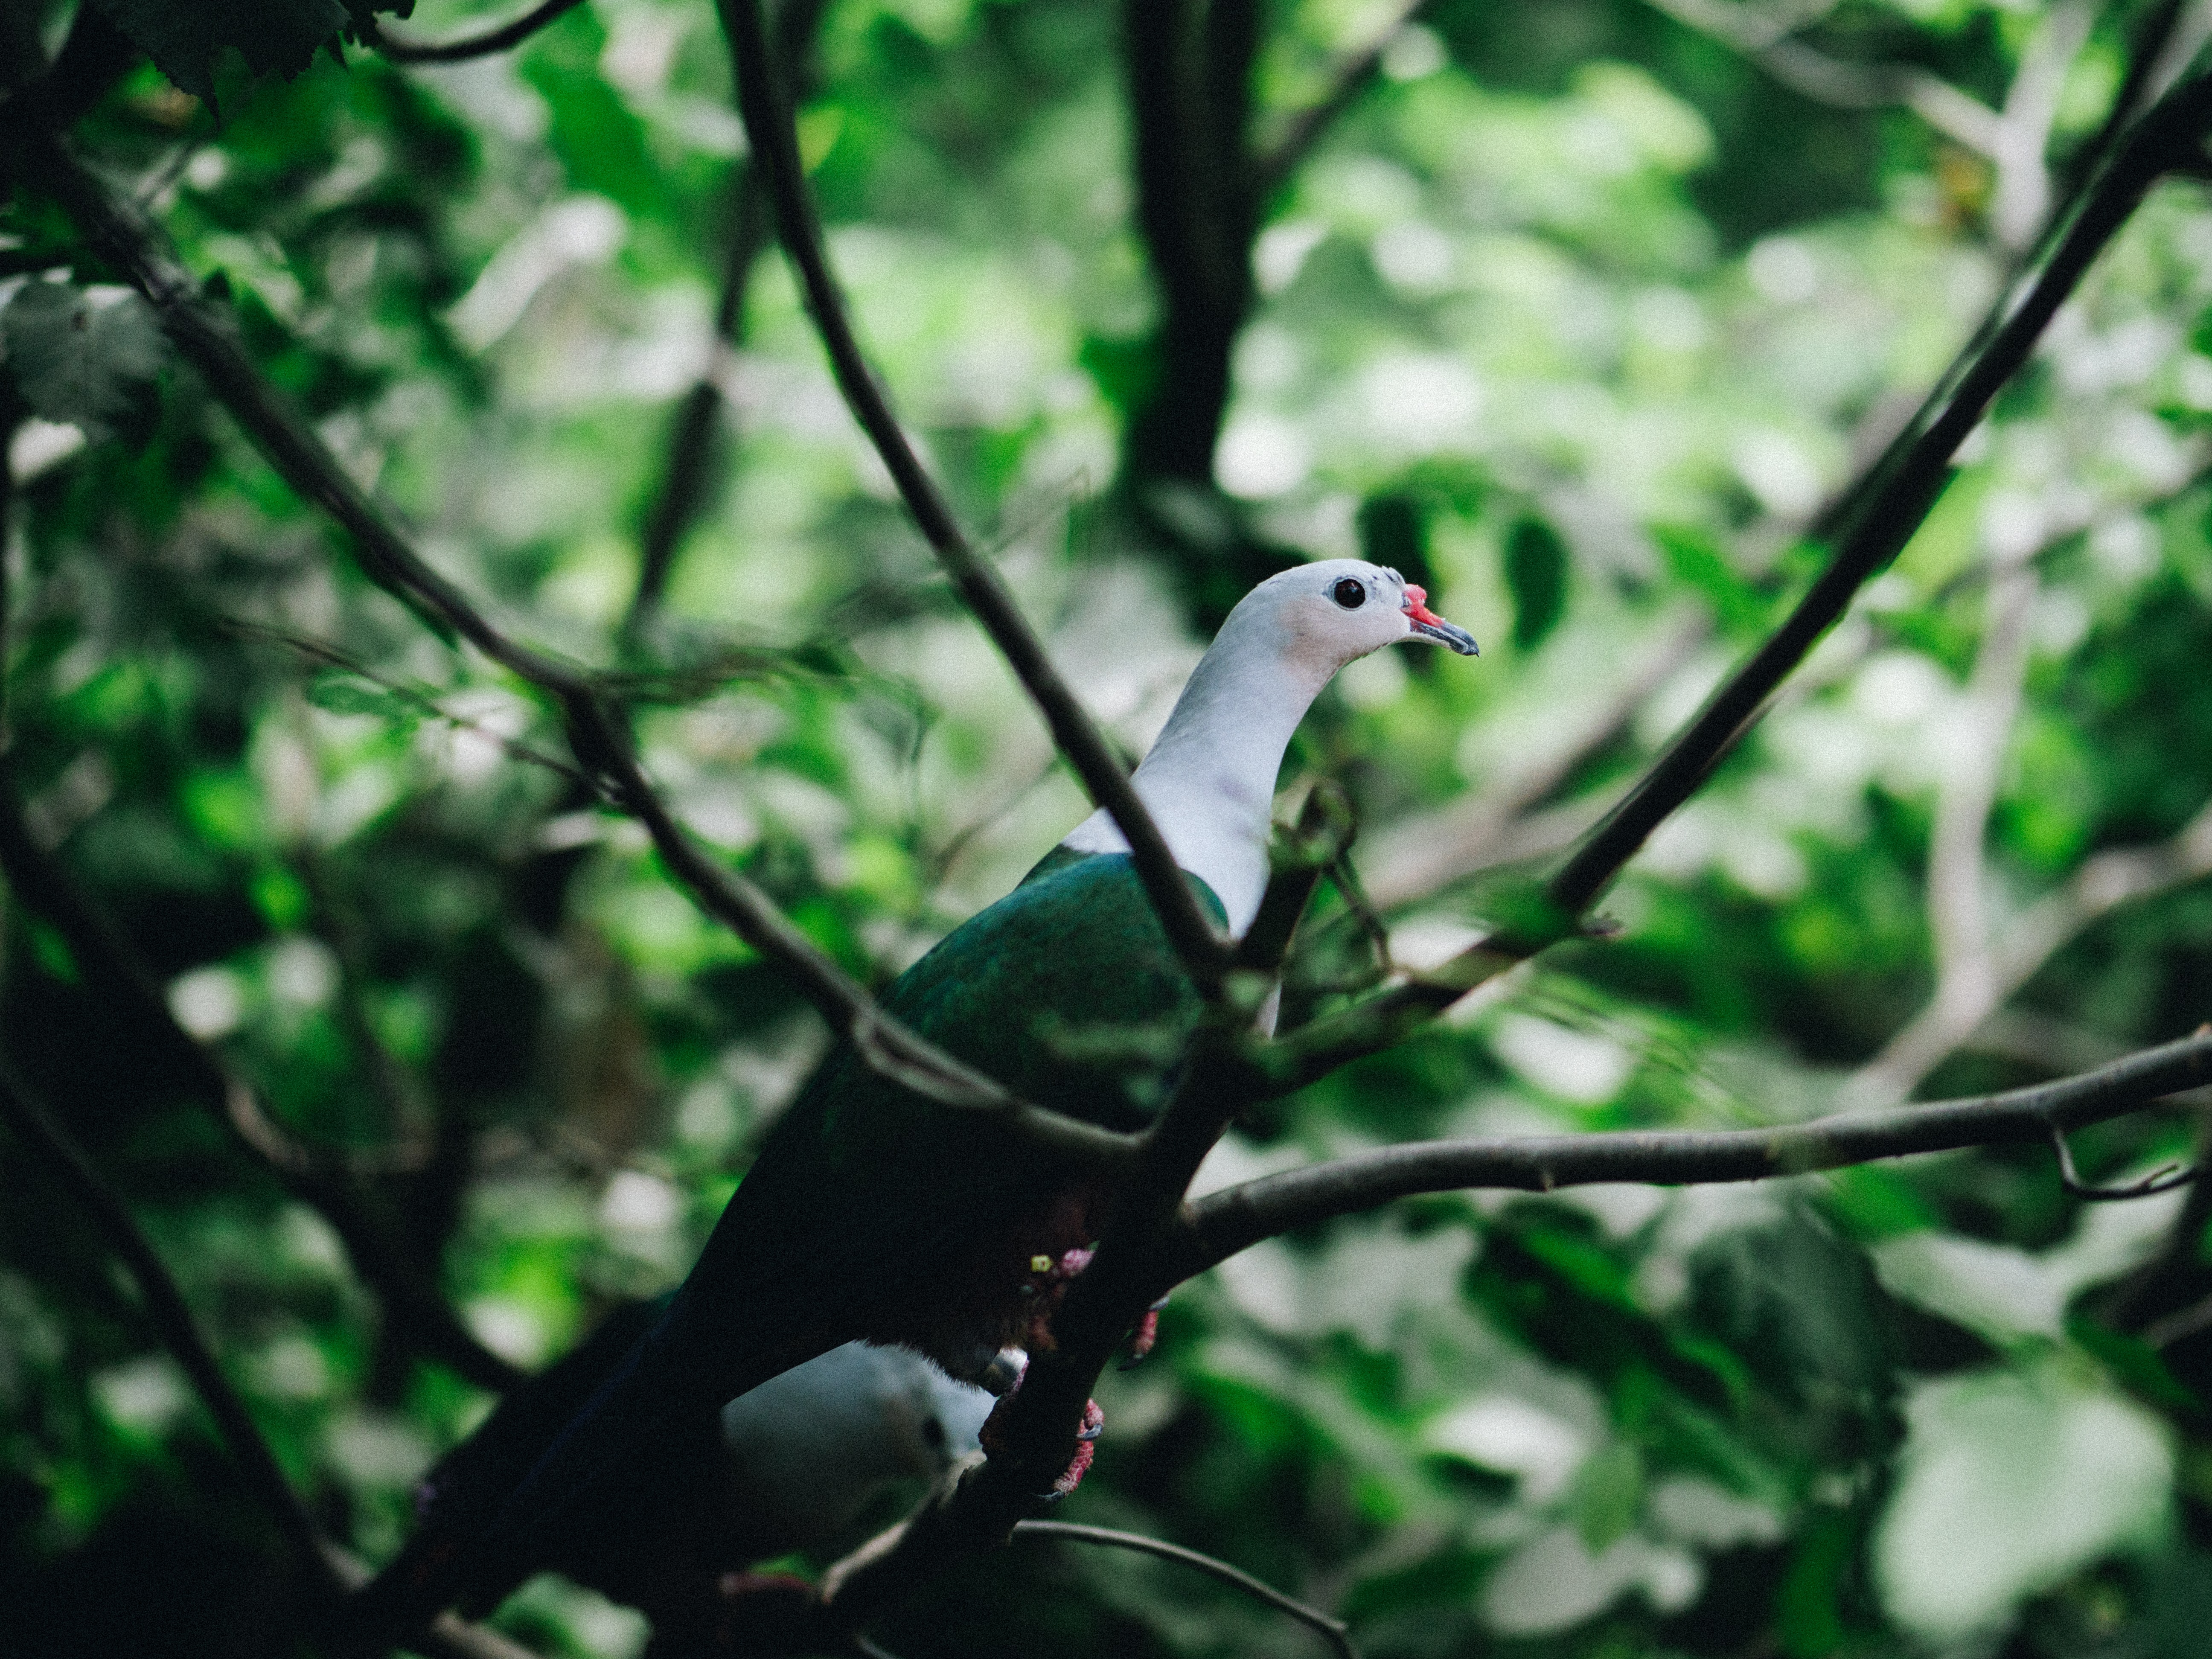 green and white bird perching on tree branch during daytime